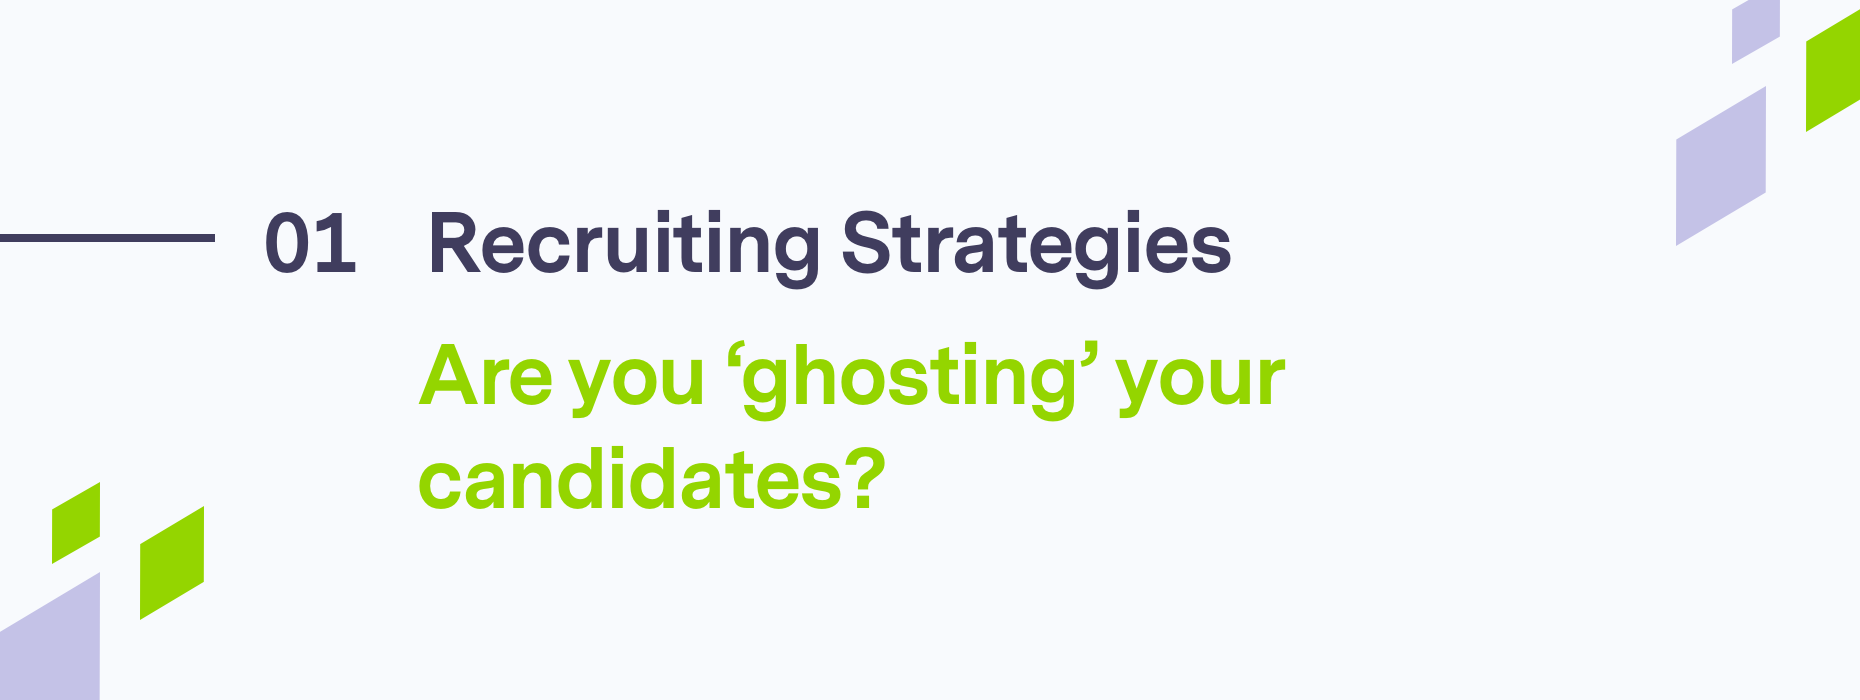 Text on candidate ghosting